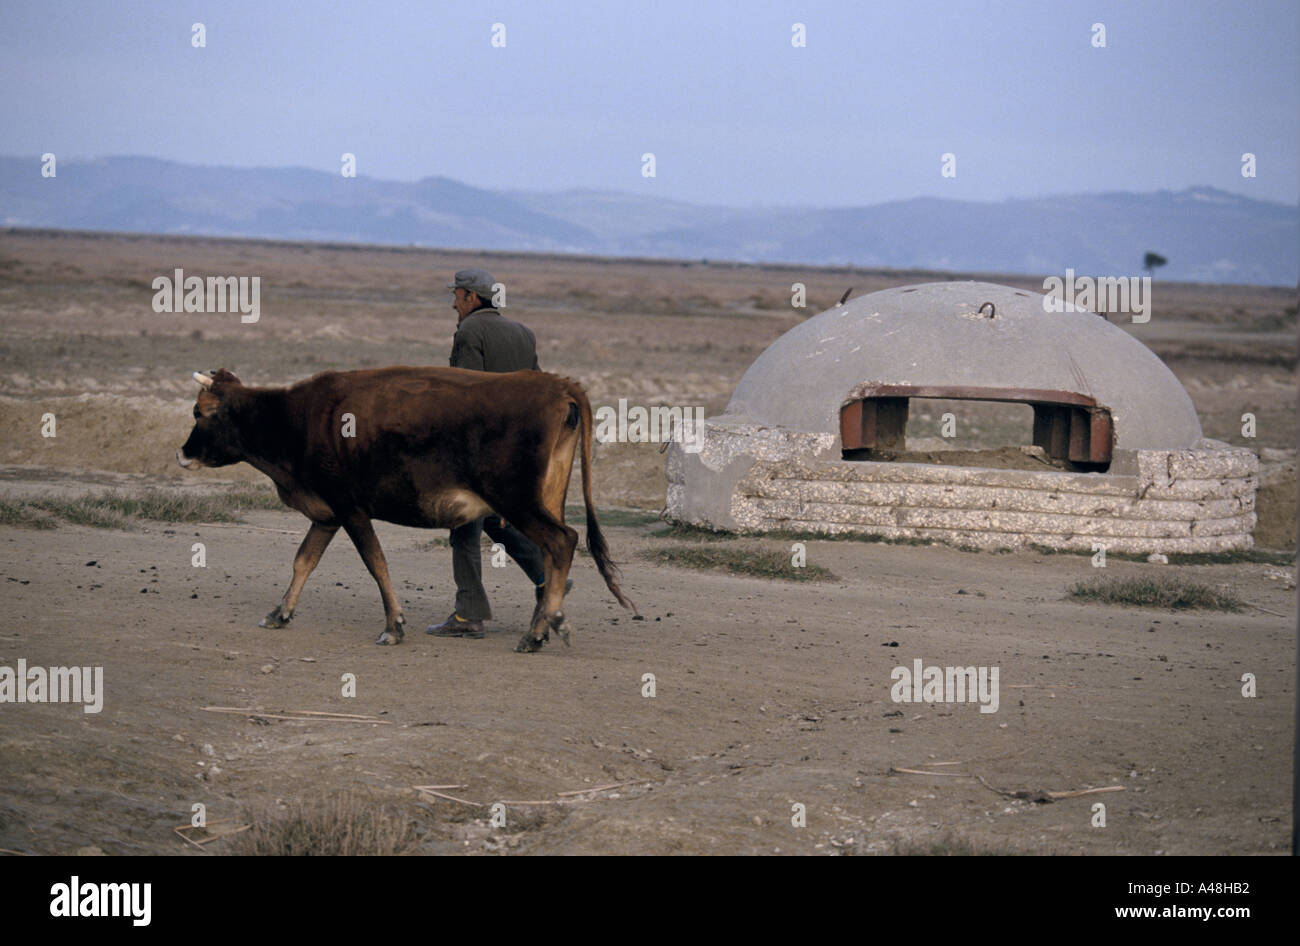 An albania man leading a cow past a concrete bunker built during the Enver Hoxa years - Stock Image